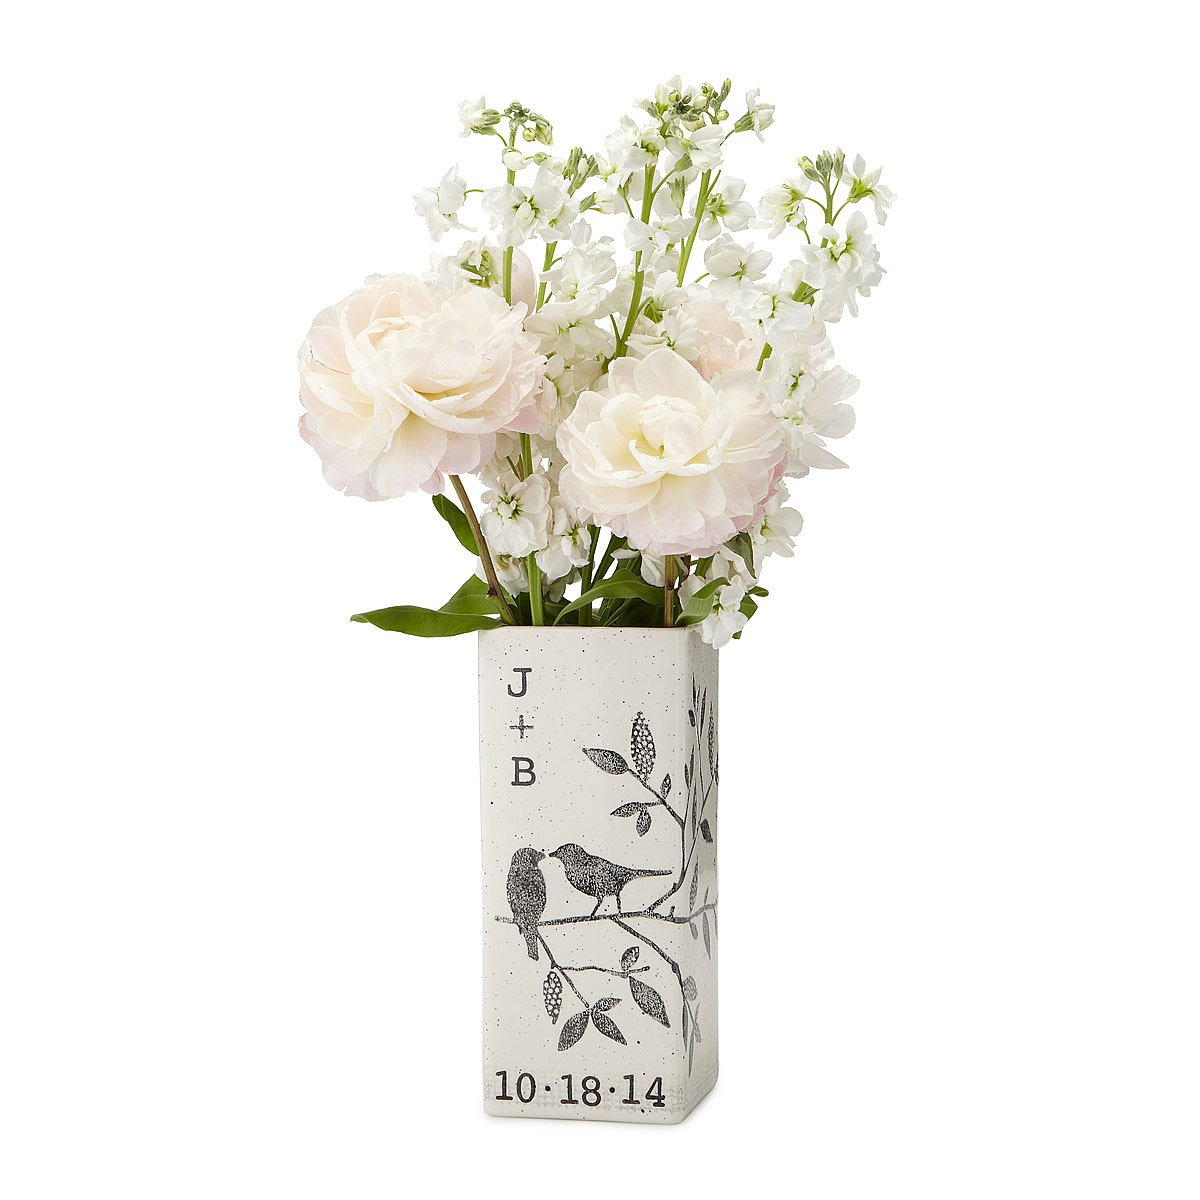 custom inches vase transfer stands process bud photos tall photo handmade by family in preserved the glass intricate memory pin diameter your beginn is this personalized are